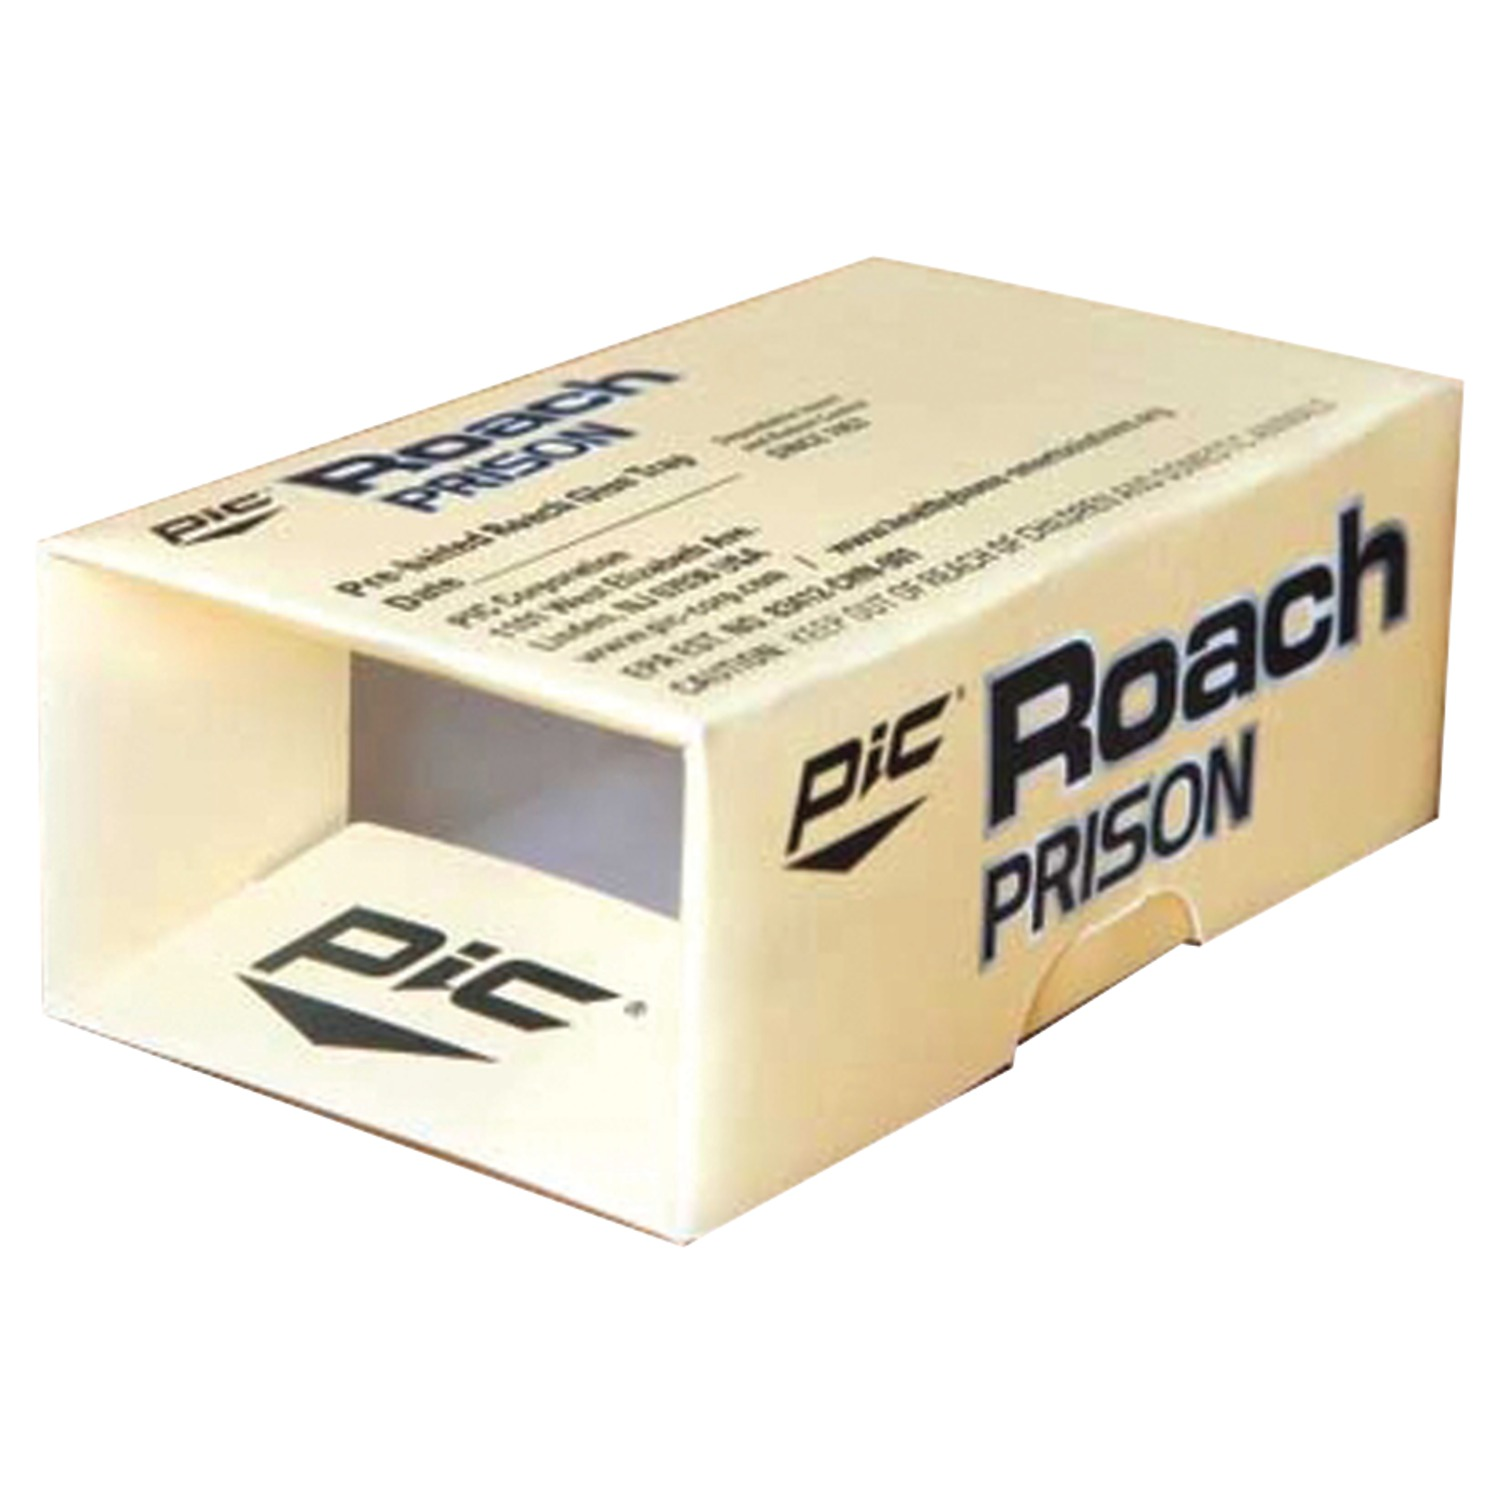 PIC RP Roach Prison Covered Insect Glue Trap, 2 pk